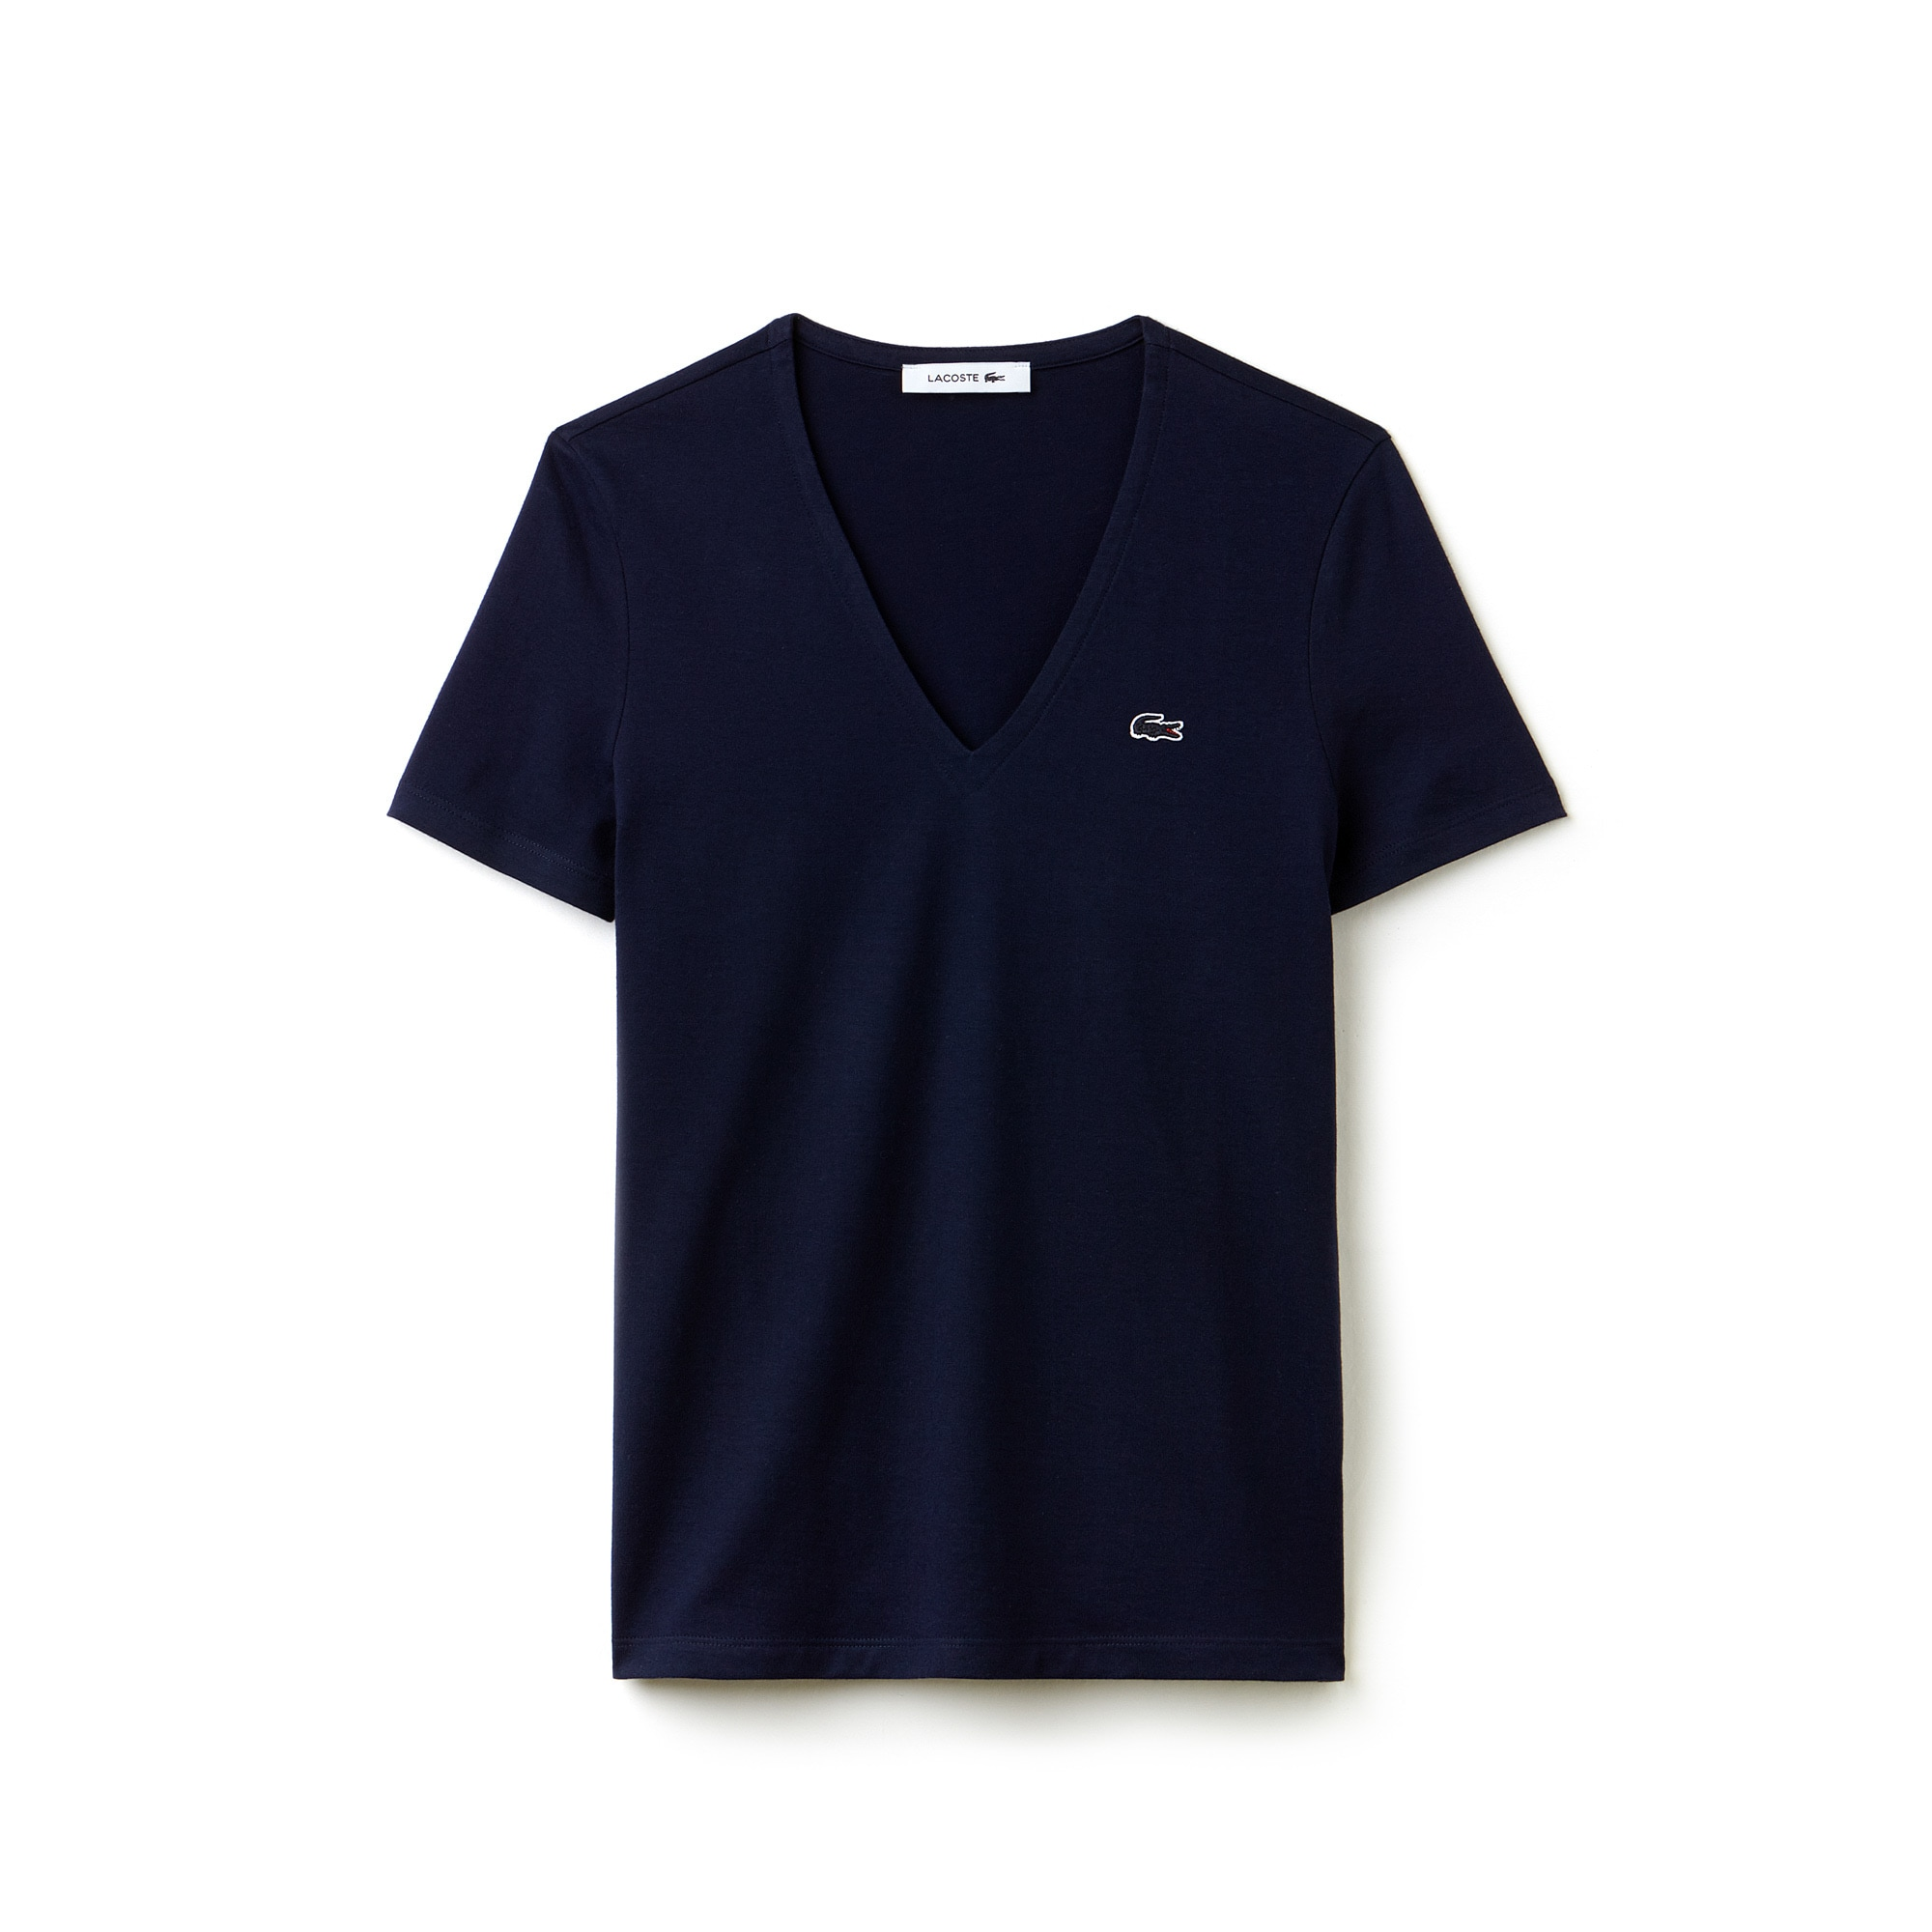 T-shirt con collo a V slim fit in jersey di cotone tinta unita